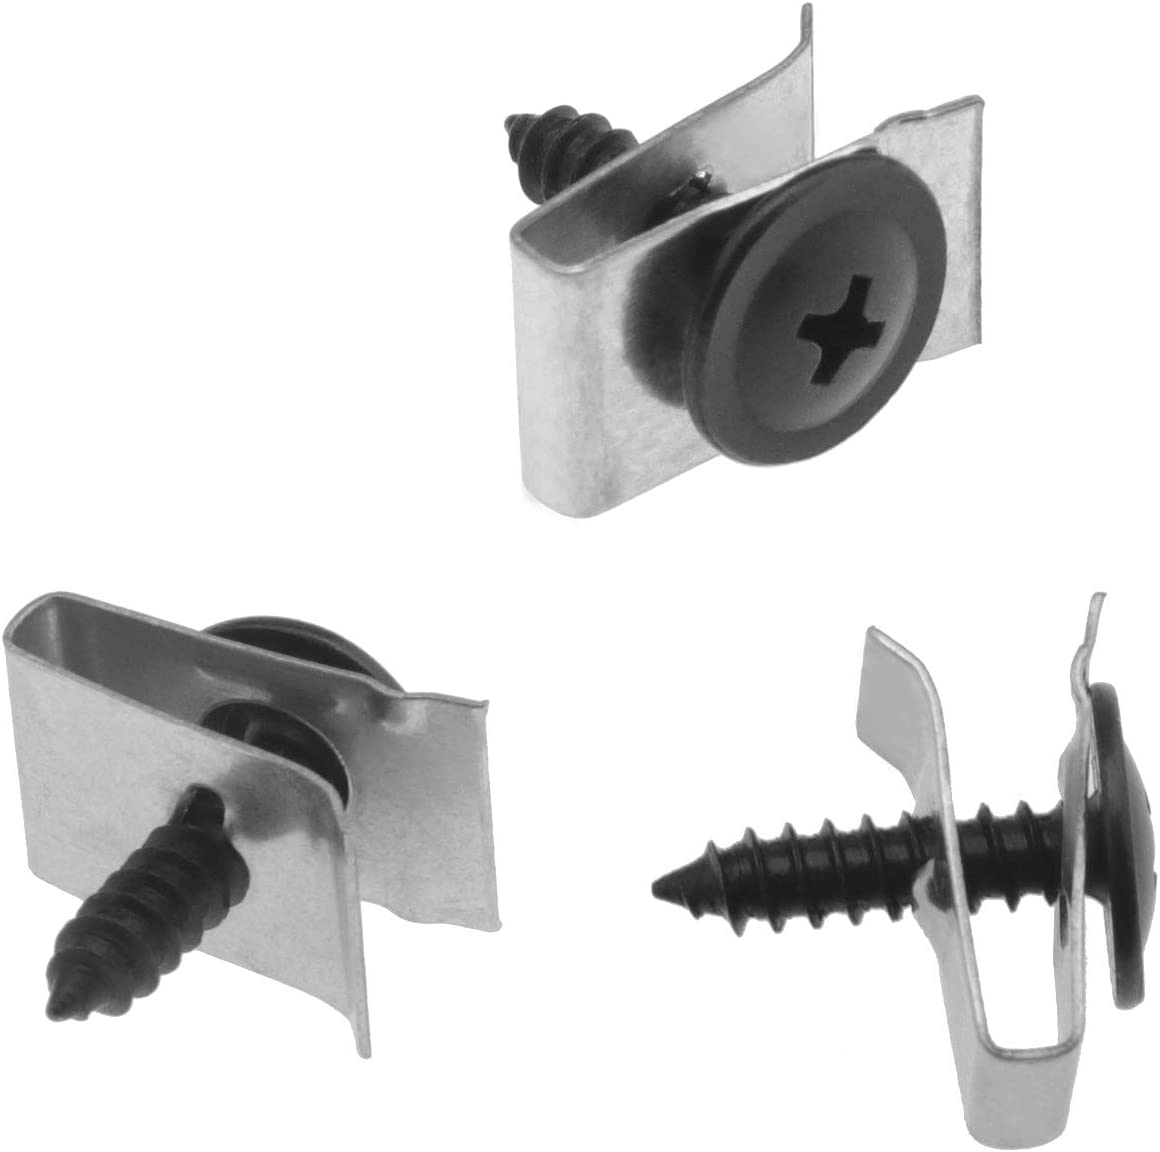 for Wheel Arch Cover Undertray Fender N90775001 20Pcs Screw and Nut Clip Kit